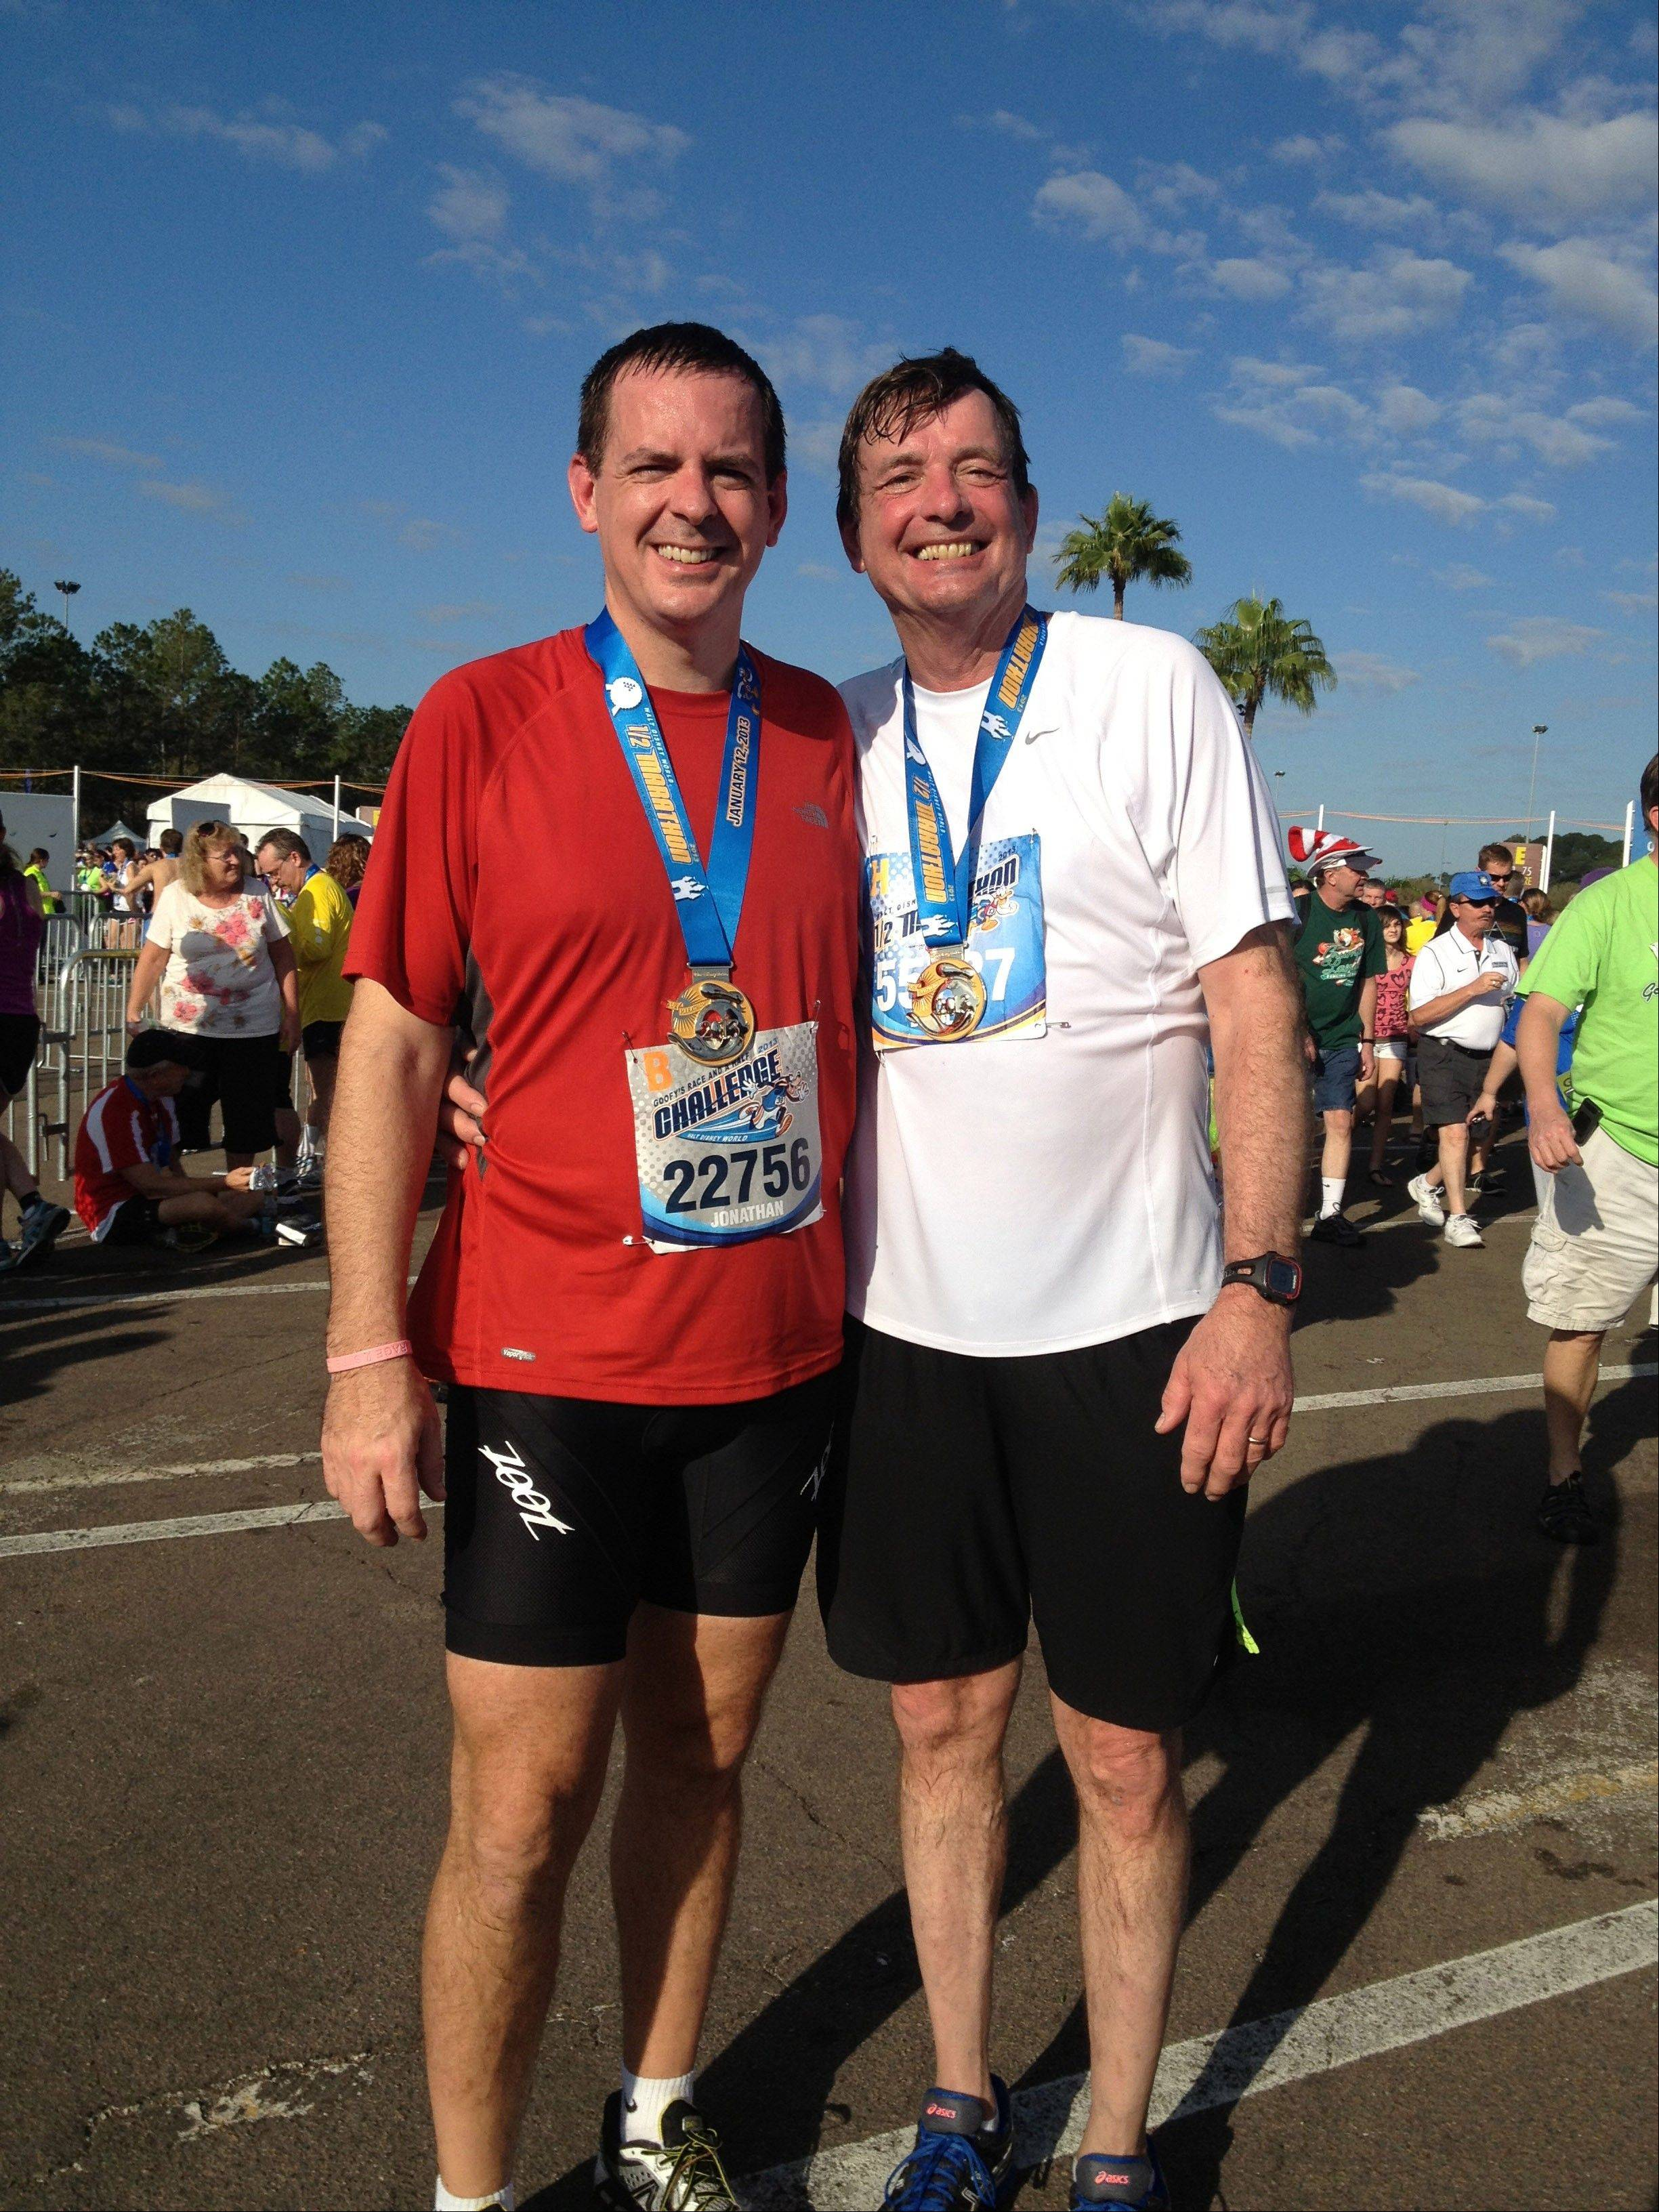 Associated Press/Jan. 12, 2013Doug Olson, right, and his son, Jon, stand together after running a half-marathon in Orlando, Fla. As of December 2013, Doug Olson, 67, a scientist for a medical device maker, shows no sign of cancer since gene therapy in September 2010 for chronic lymphocytic leukemia he found he had in 1996.